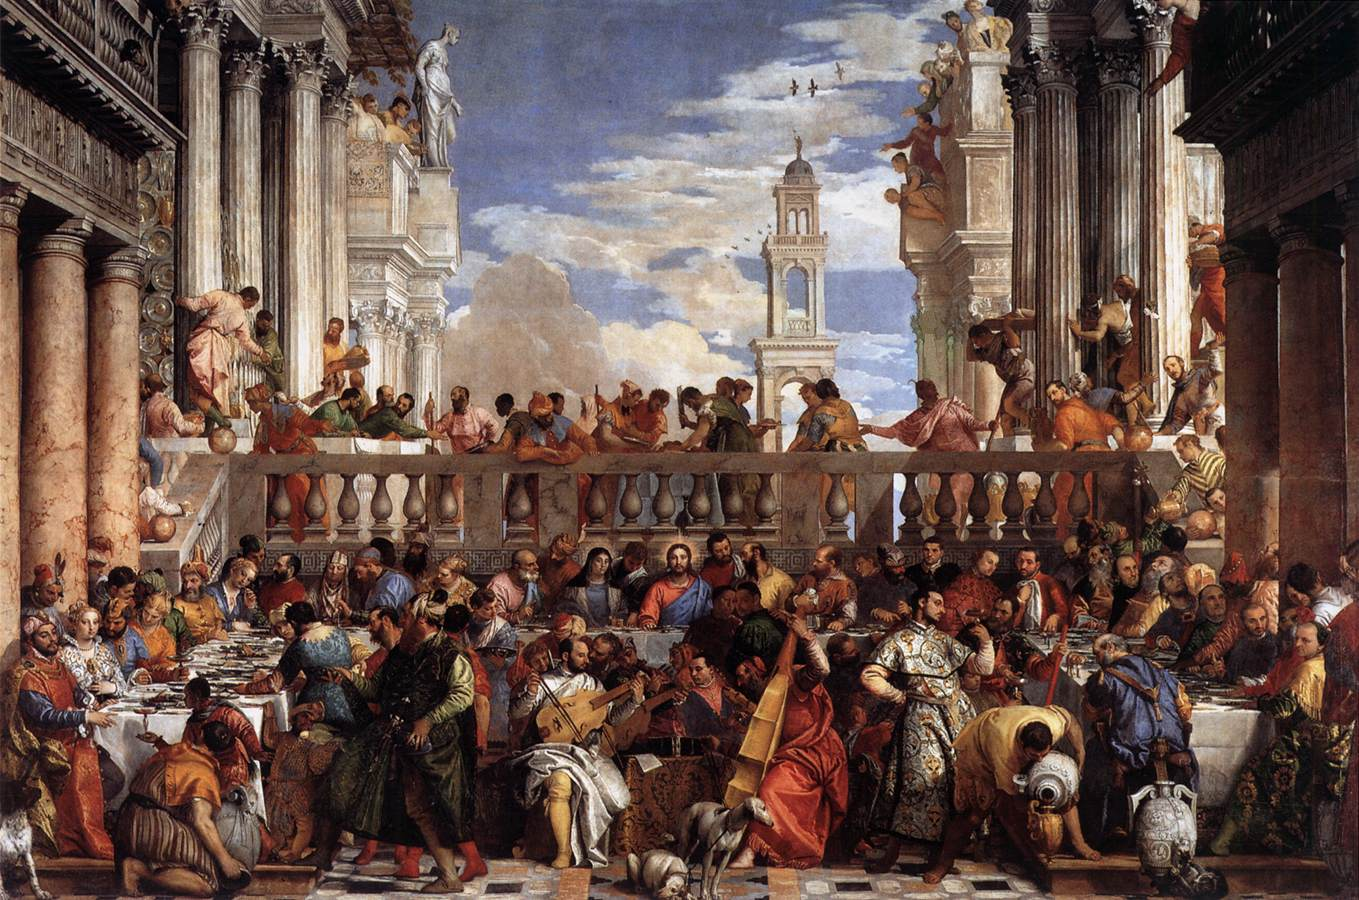 The Art History Journal: Paolo Veronese